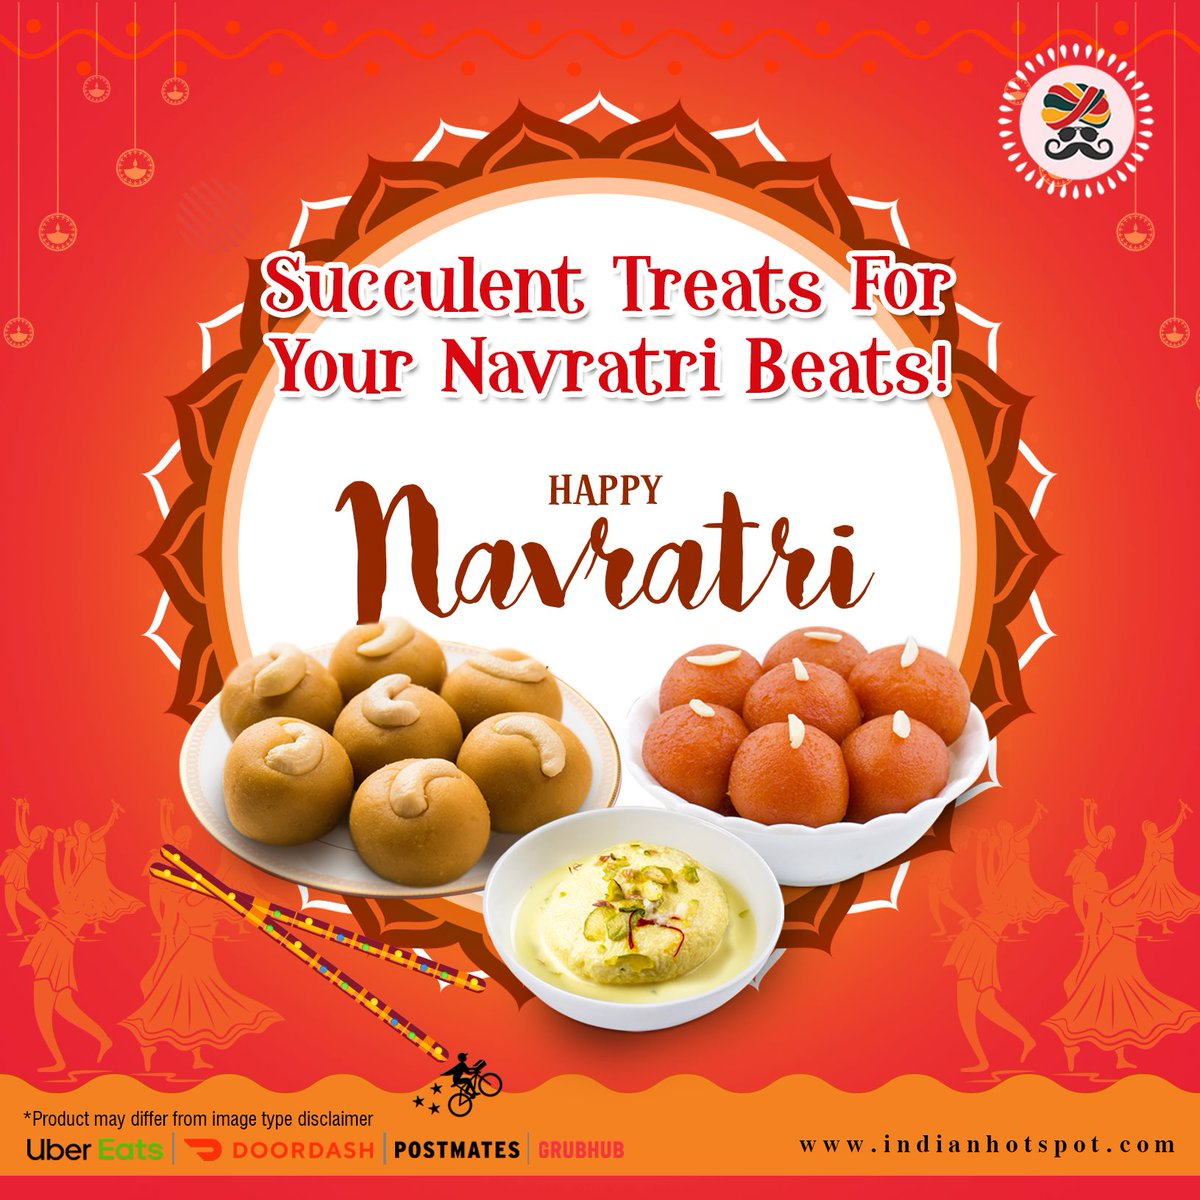 World food day May the nine days and nine nights of Navratri Bring good food and good health in your life. Celebrate this Navratri with Indian Hotspot in Indian style even when you are away from home/India Wishing you a very Happy Navratri. #HappyNavratri #indianhotspot https://t.co/dabgmd6l7H